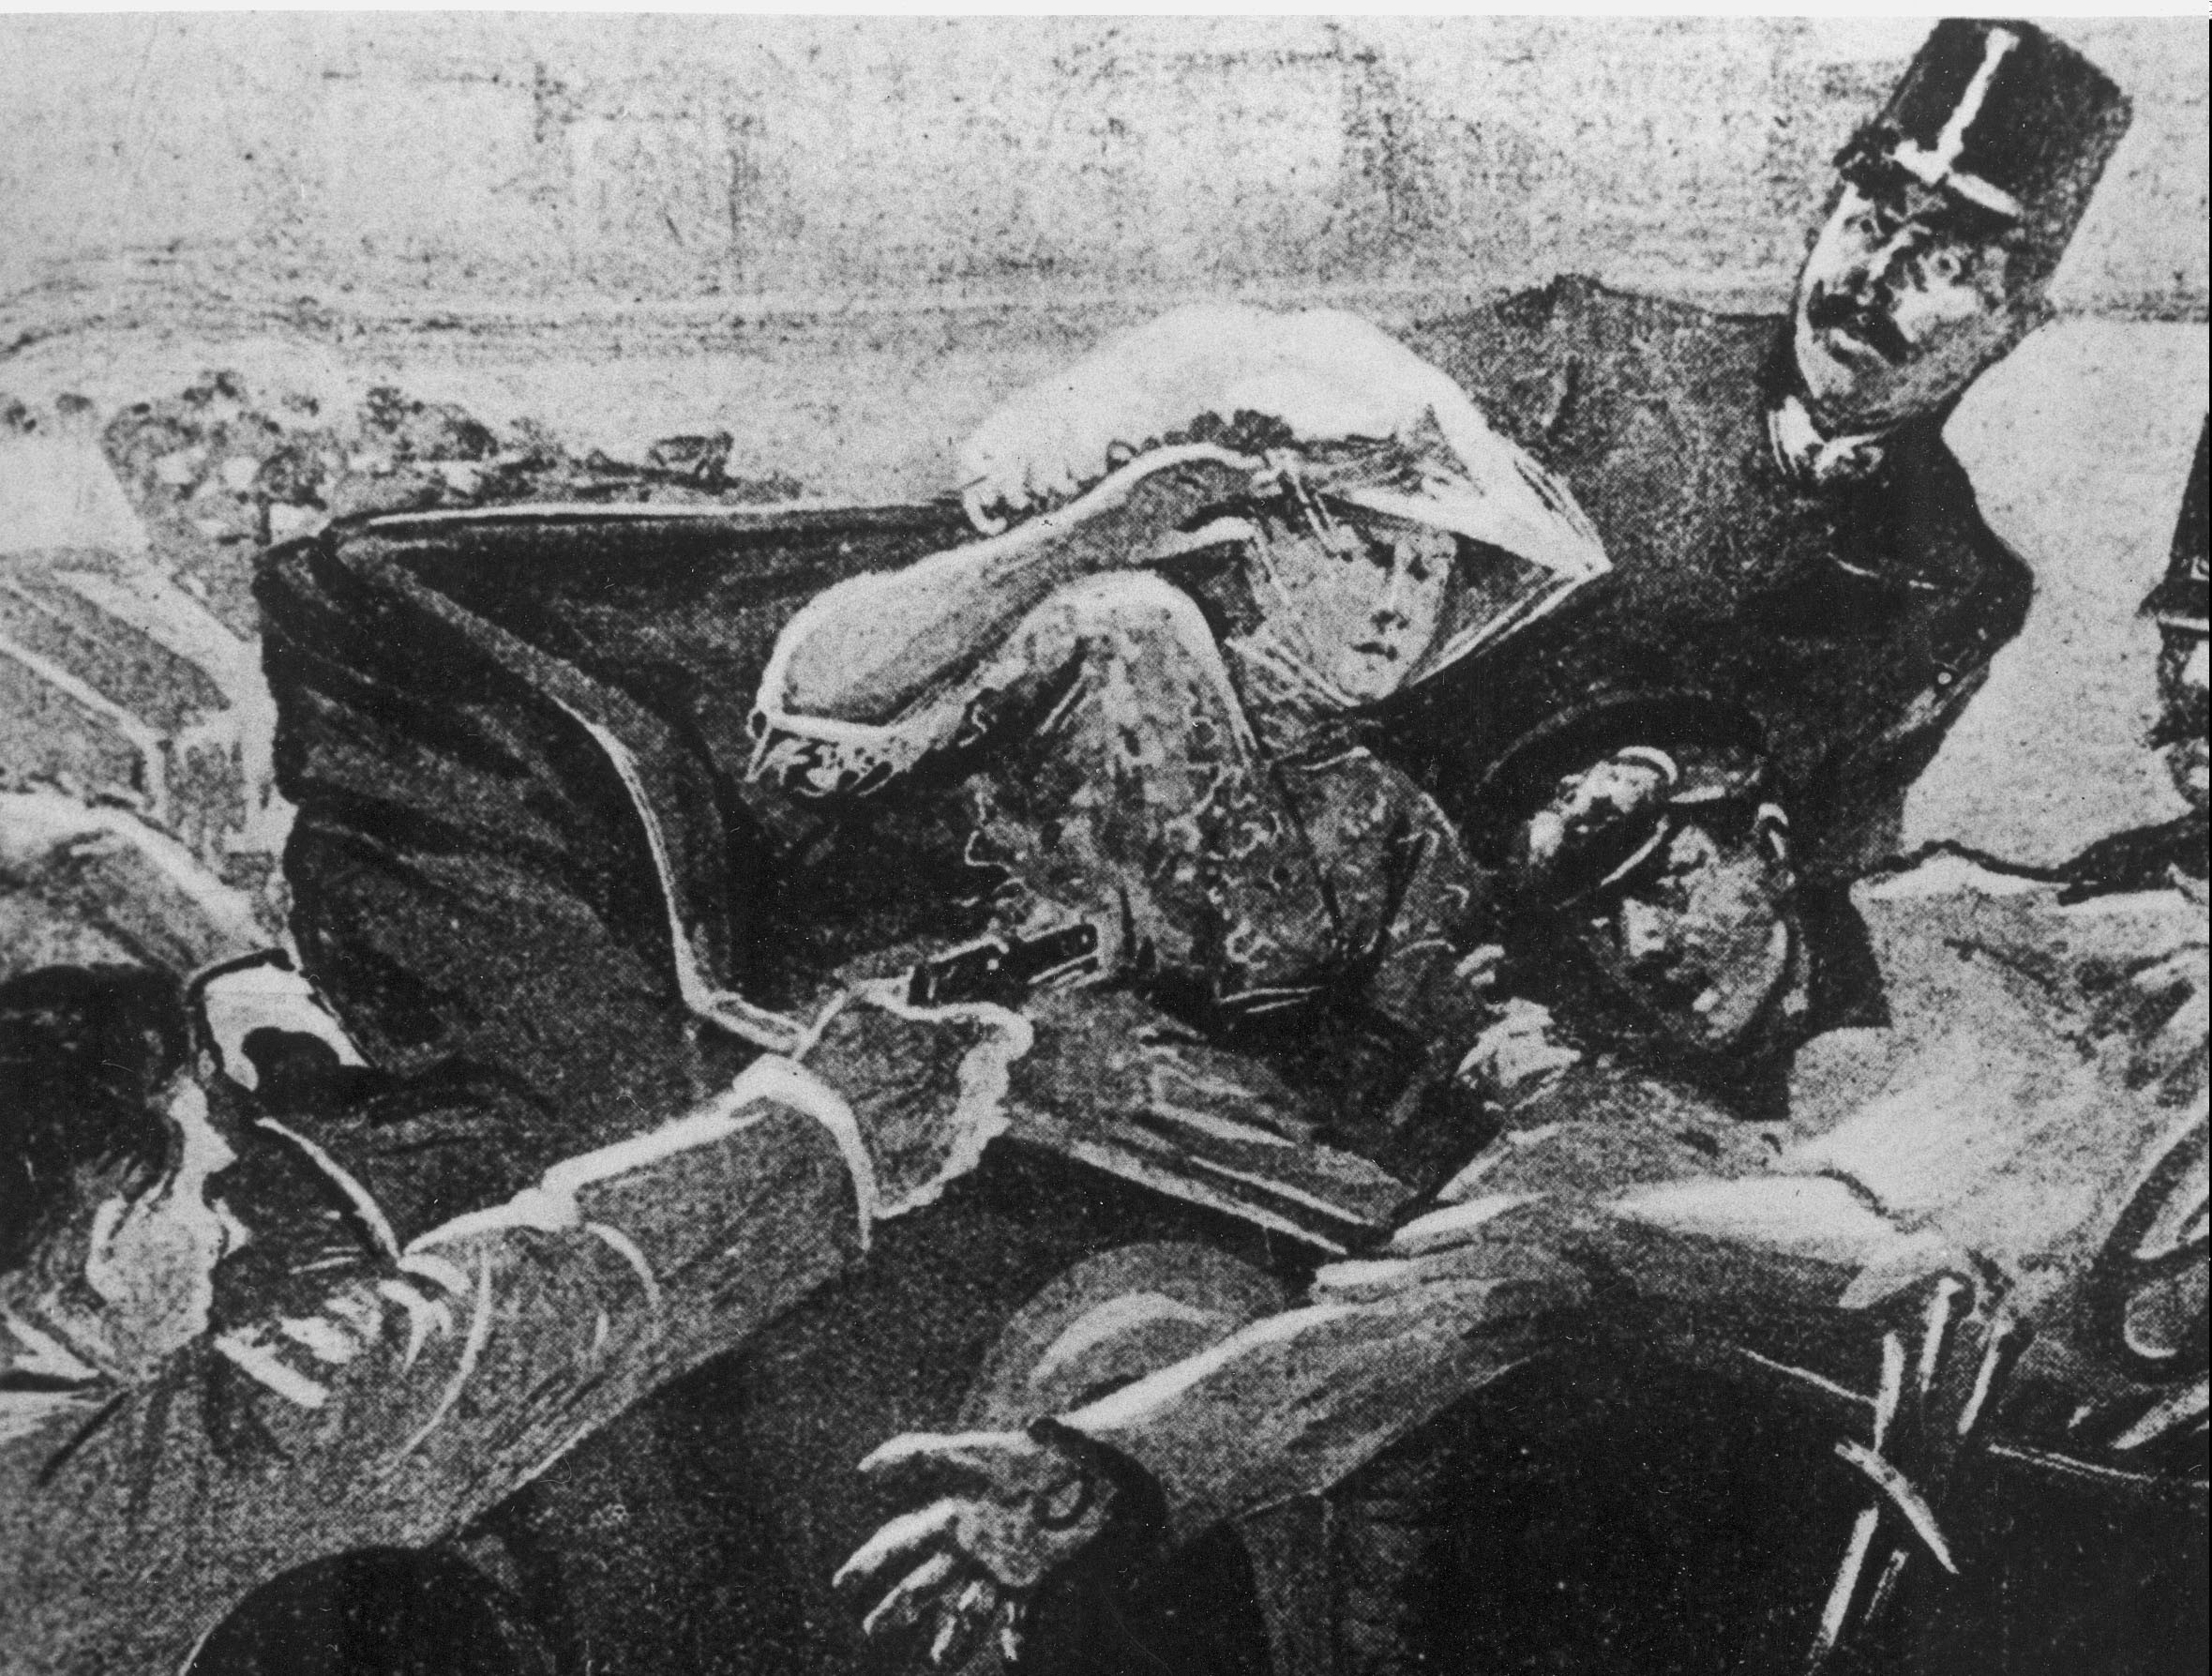 Artist's rendering of the assassination of Archduke Franz Ferdinand